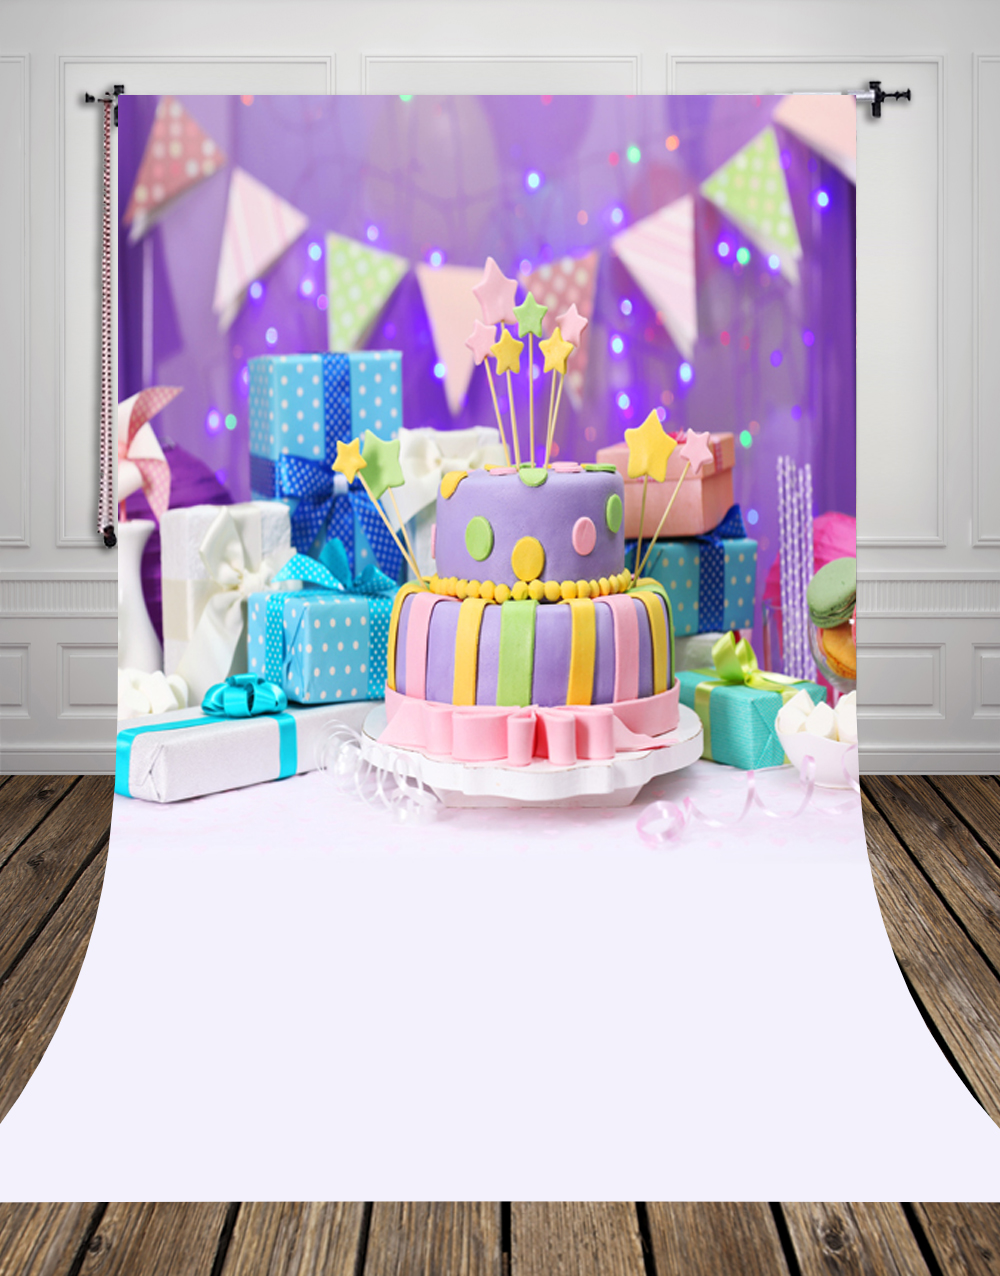 Violet birthday photography background printed with birthdays gifts and sweet cakes and banners Birthday cake backdrop D-9321<br><br>Aliexpress